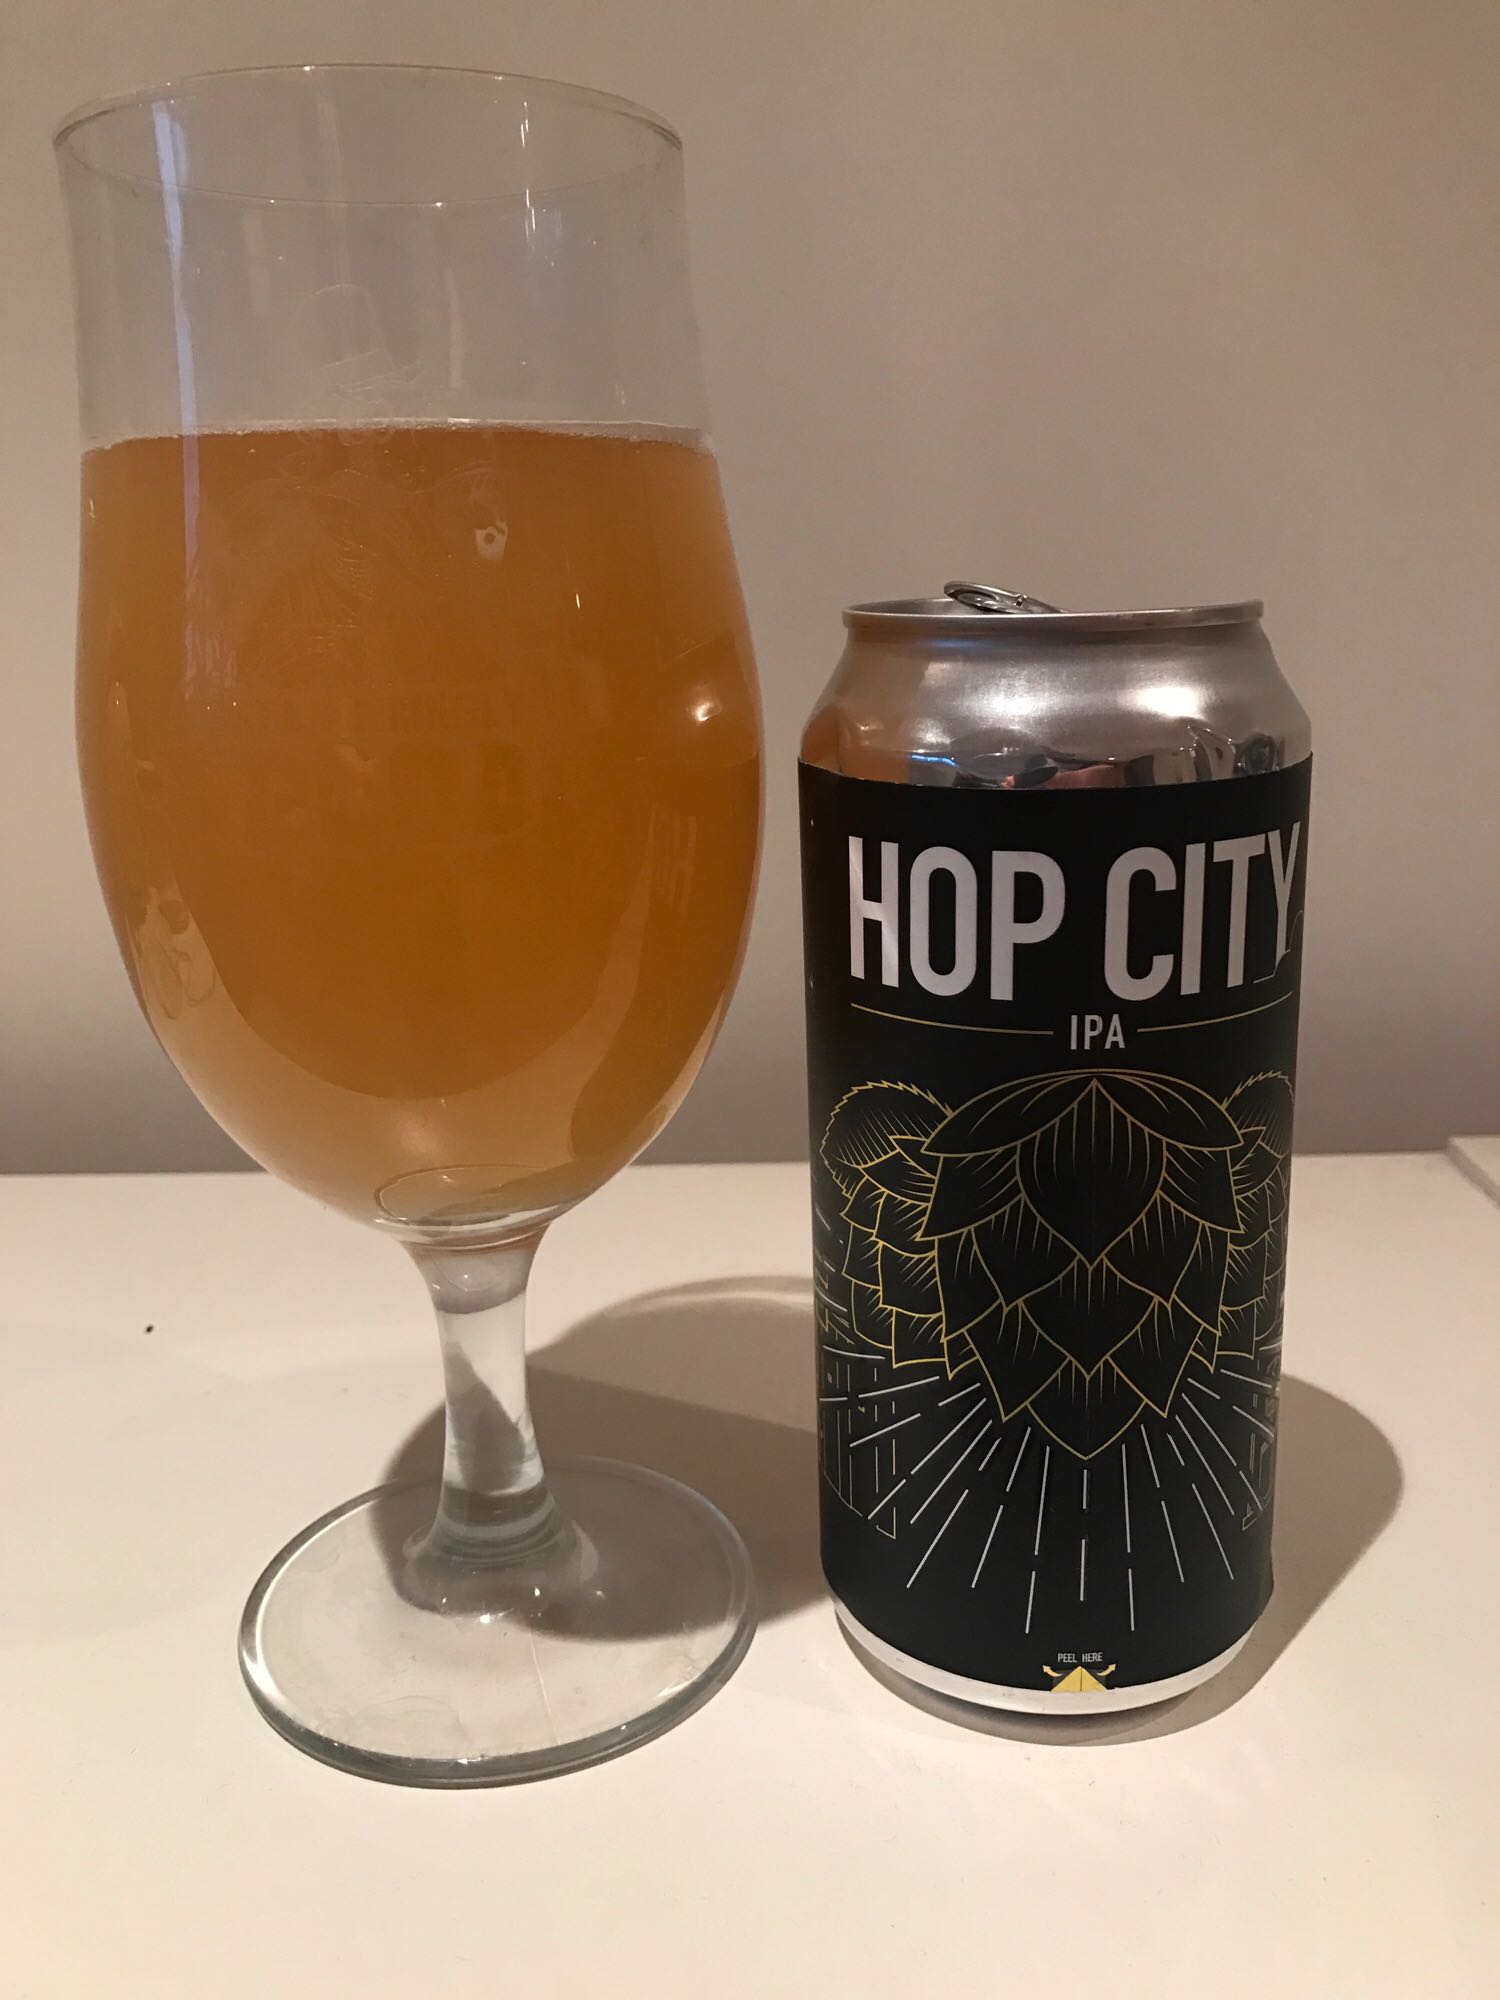 Hop City - American IPA 6.2% // Northern Monk x Cloudwater Brew Co. - Created for Hop City Festival in Leeds is this incredible IPA. It's very close to a DIPA in style but just doesn't have the bitter finish which makes it very dangerous and very chinnable.I also loved the can design. The logo itself is pretty cool but the label could be peeled off and contained information on the festival which I thought was a nice detail.